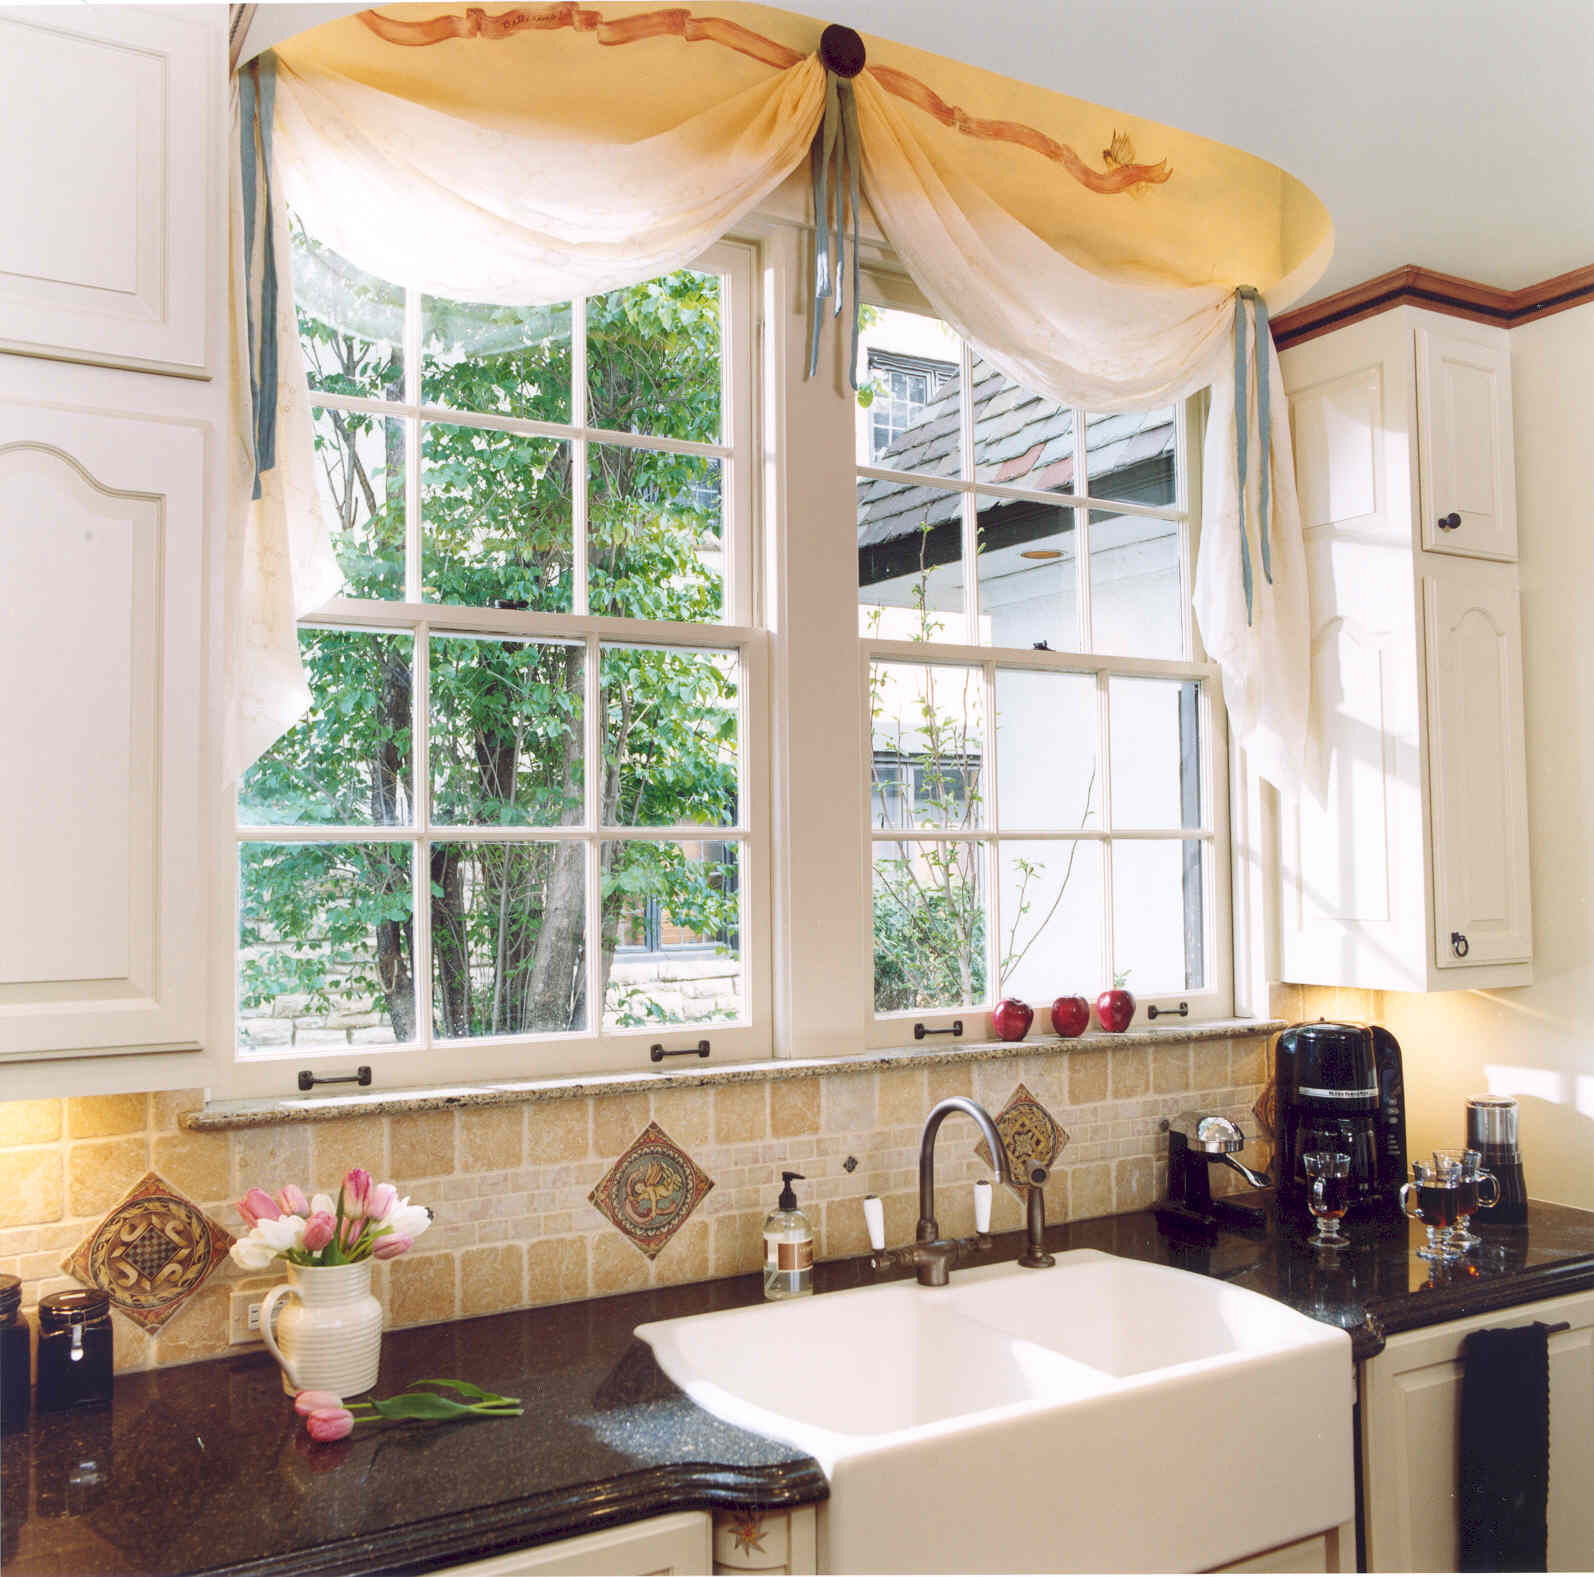 Window treatment for kitchen window over sink photo - 2